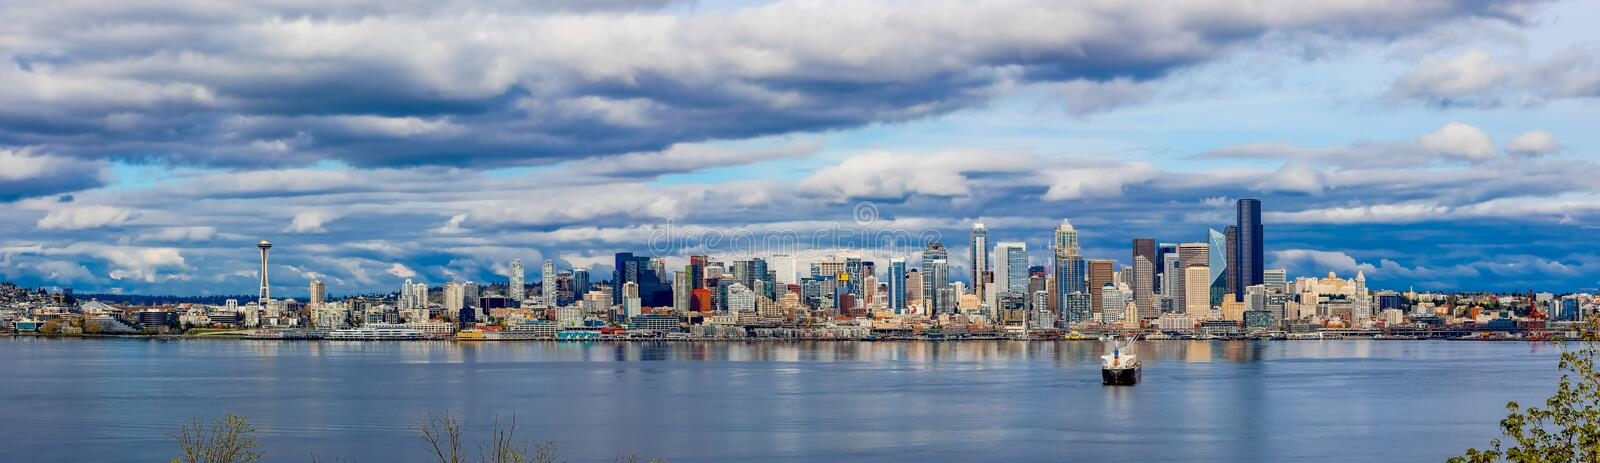 Wide shot of the coastline in the city of Seattle, USA under the beautiful cloudy sky. A wide shot of the coastline in the city of Seattle, USA under the stock photo